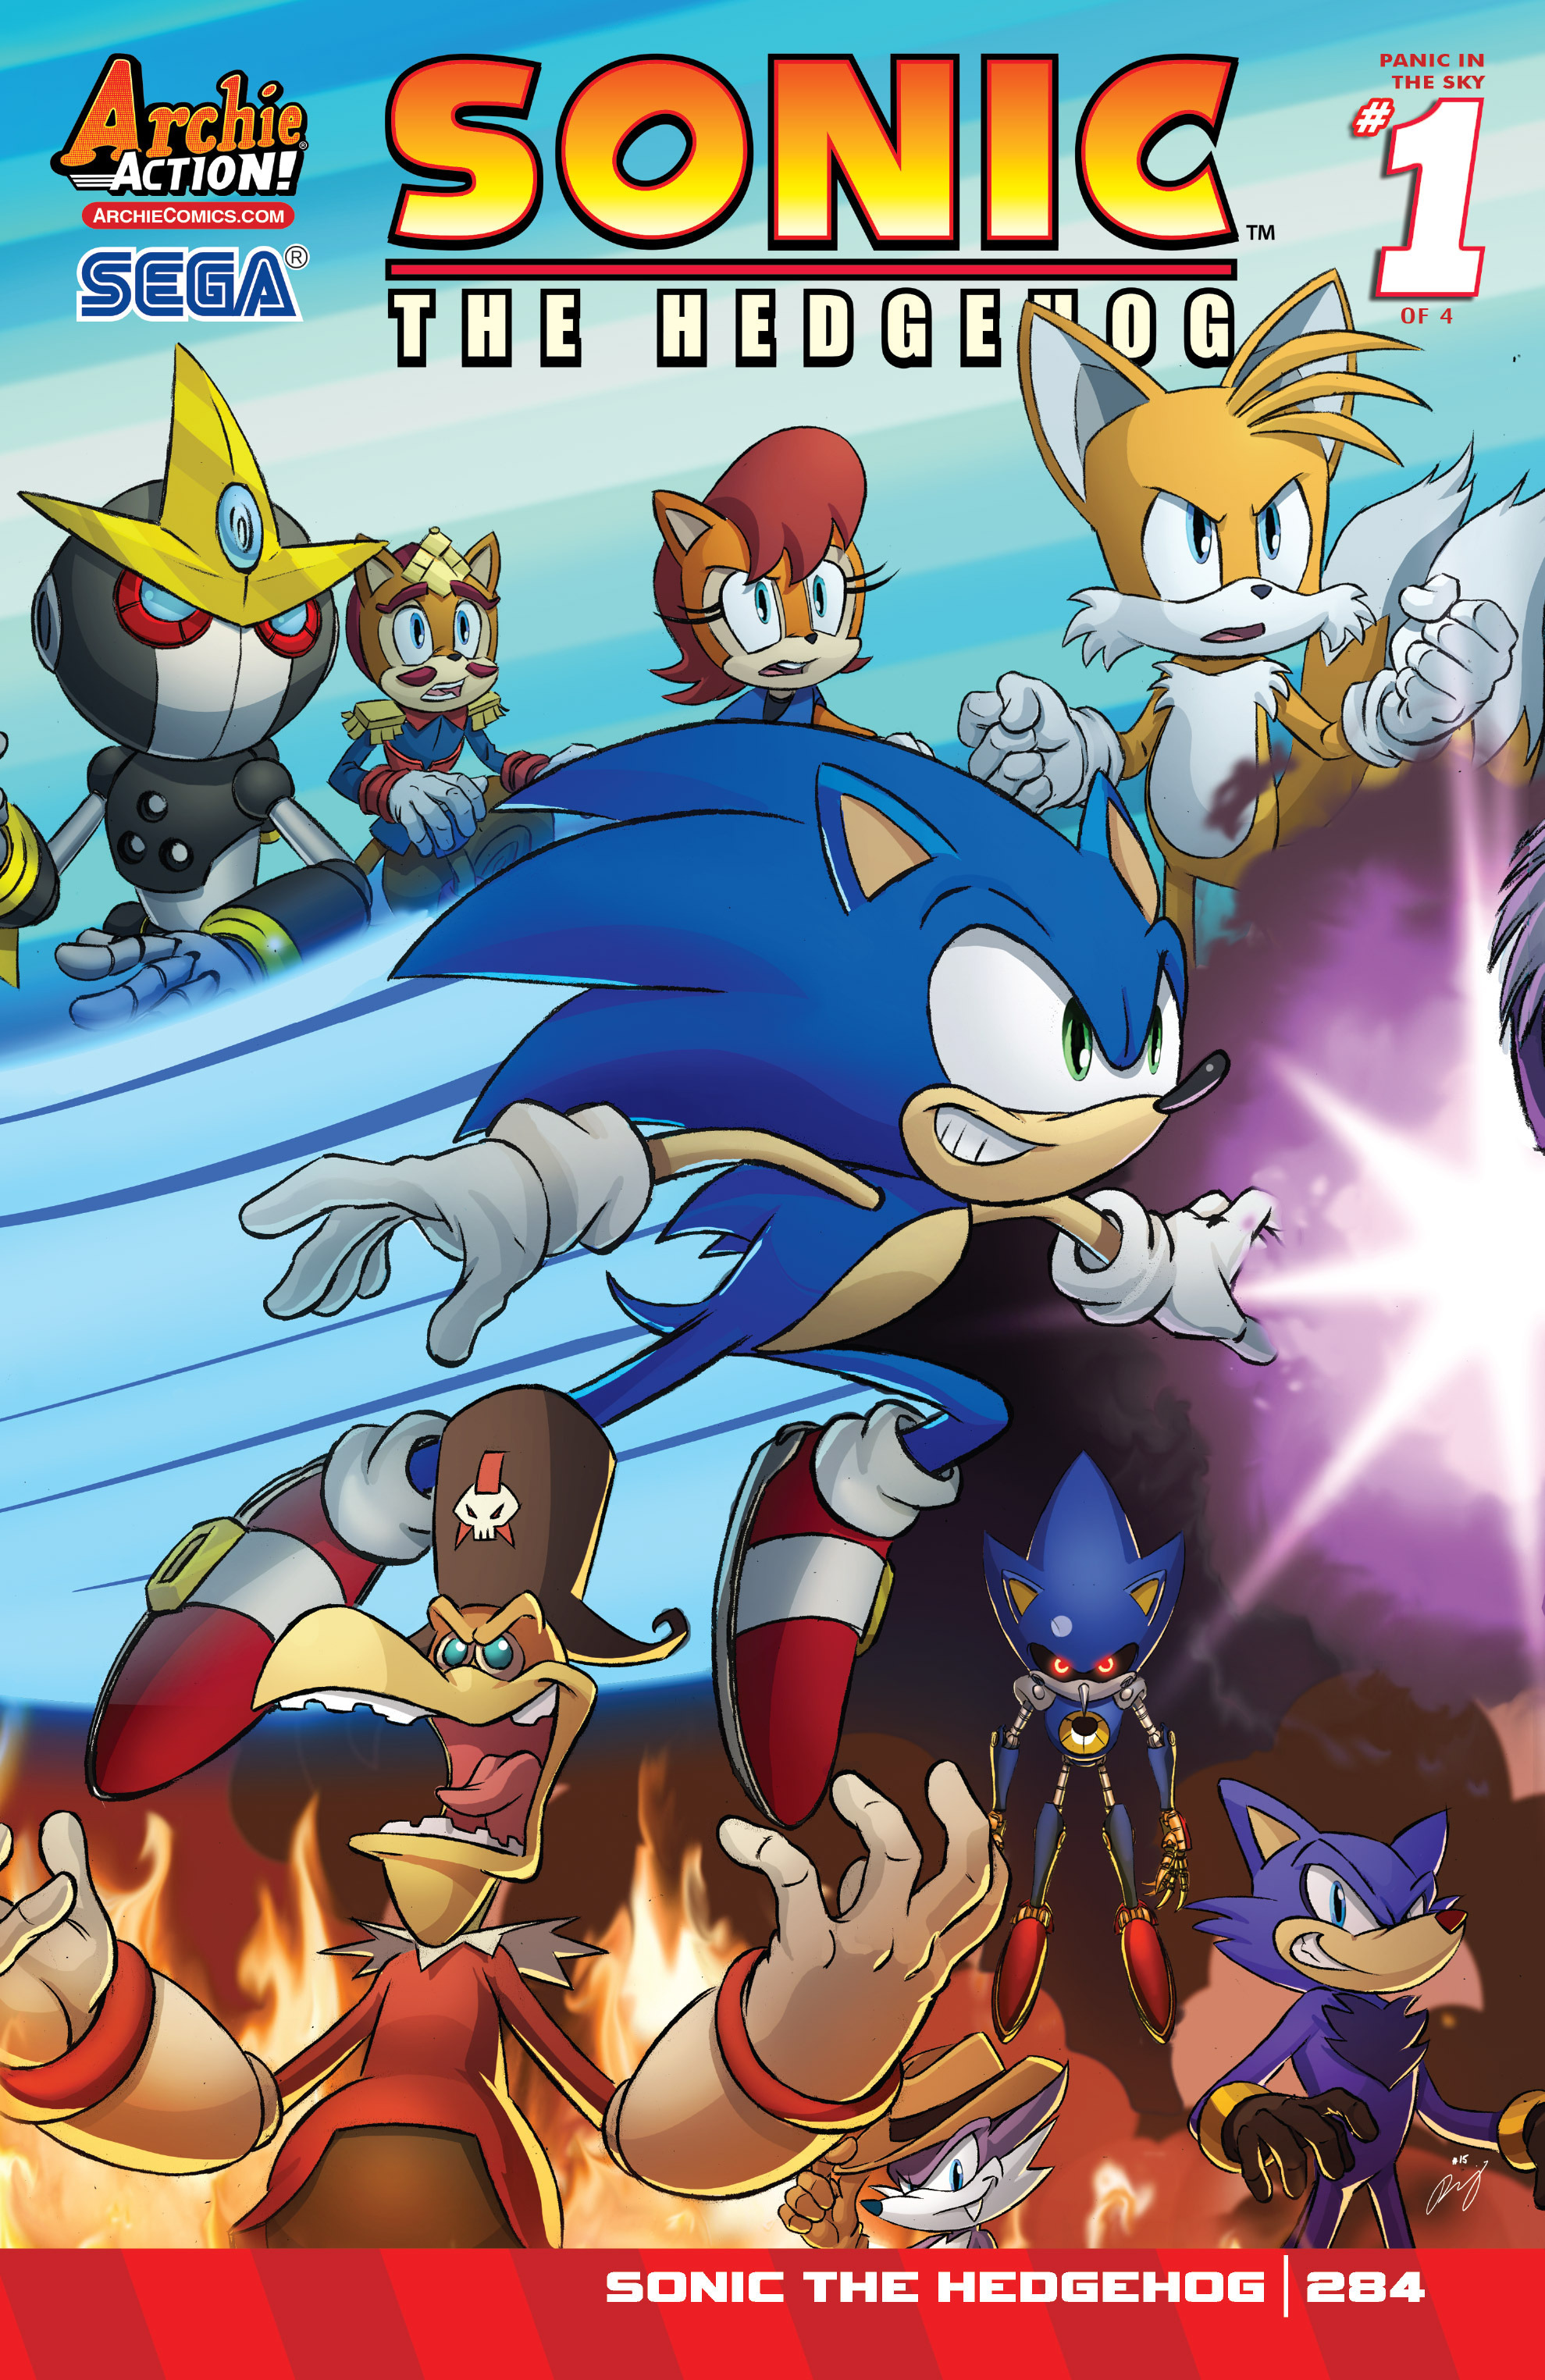 archie sonic the hedgehog issue 284 sonic news network fandom powered by wikia. Black Bedroom Furniture Sets. Home Design Ideas